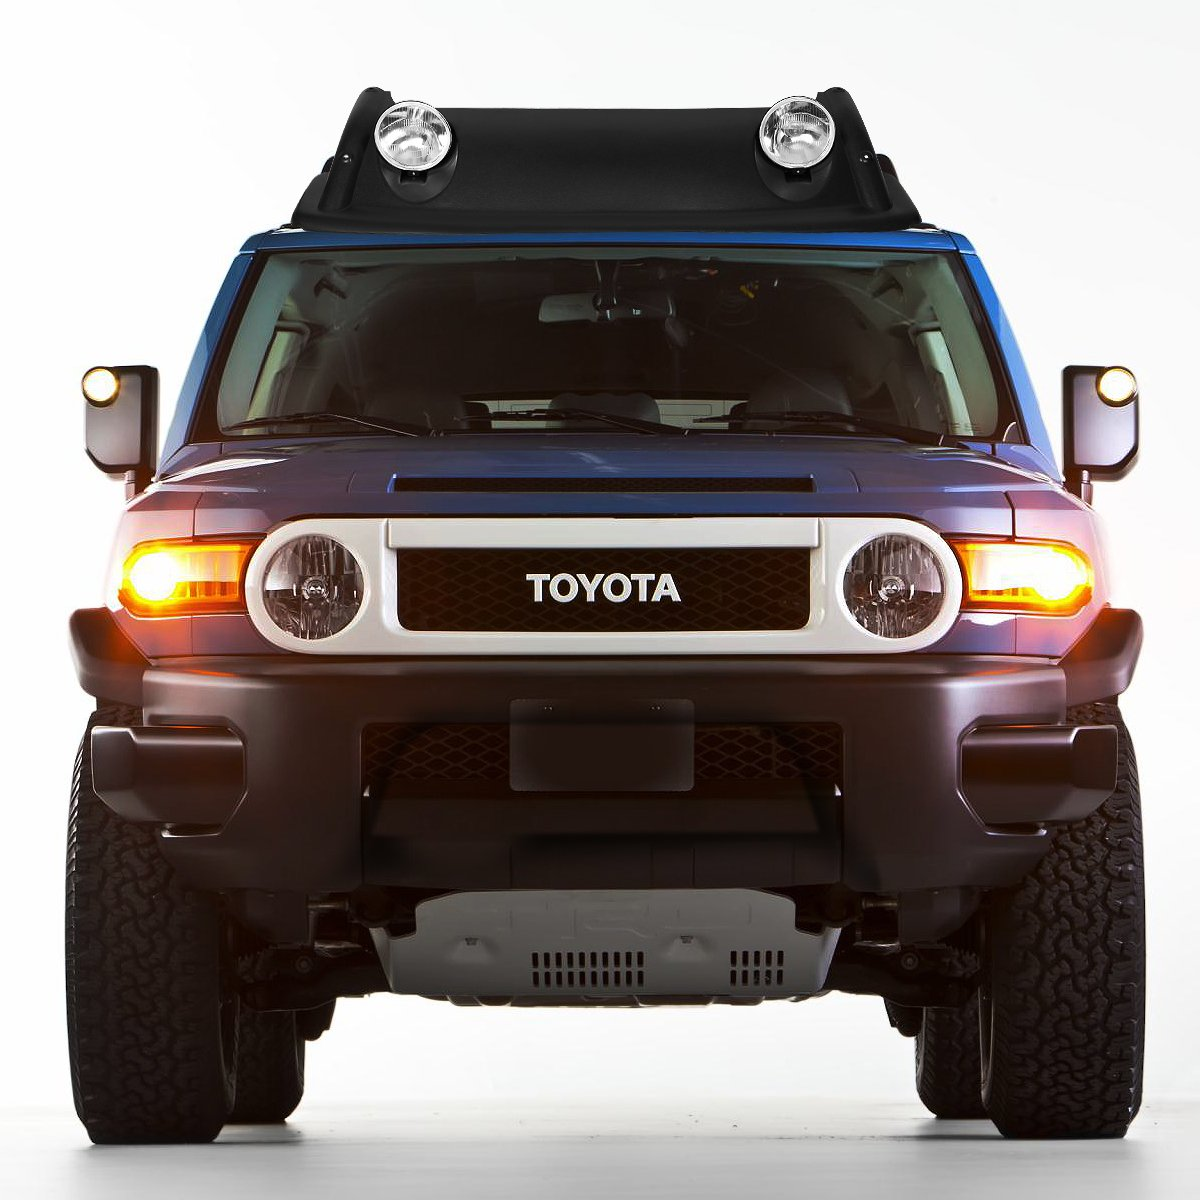 For Toyota FJ Cruiser Black Offroad OE Style Roof Rack Air Dam + Fog Lights  + Cover Kit, Gap Guards - Amazon Canada